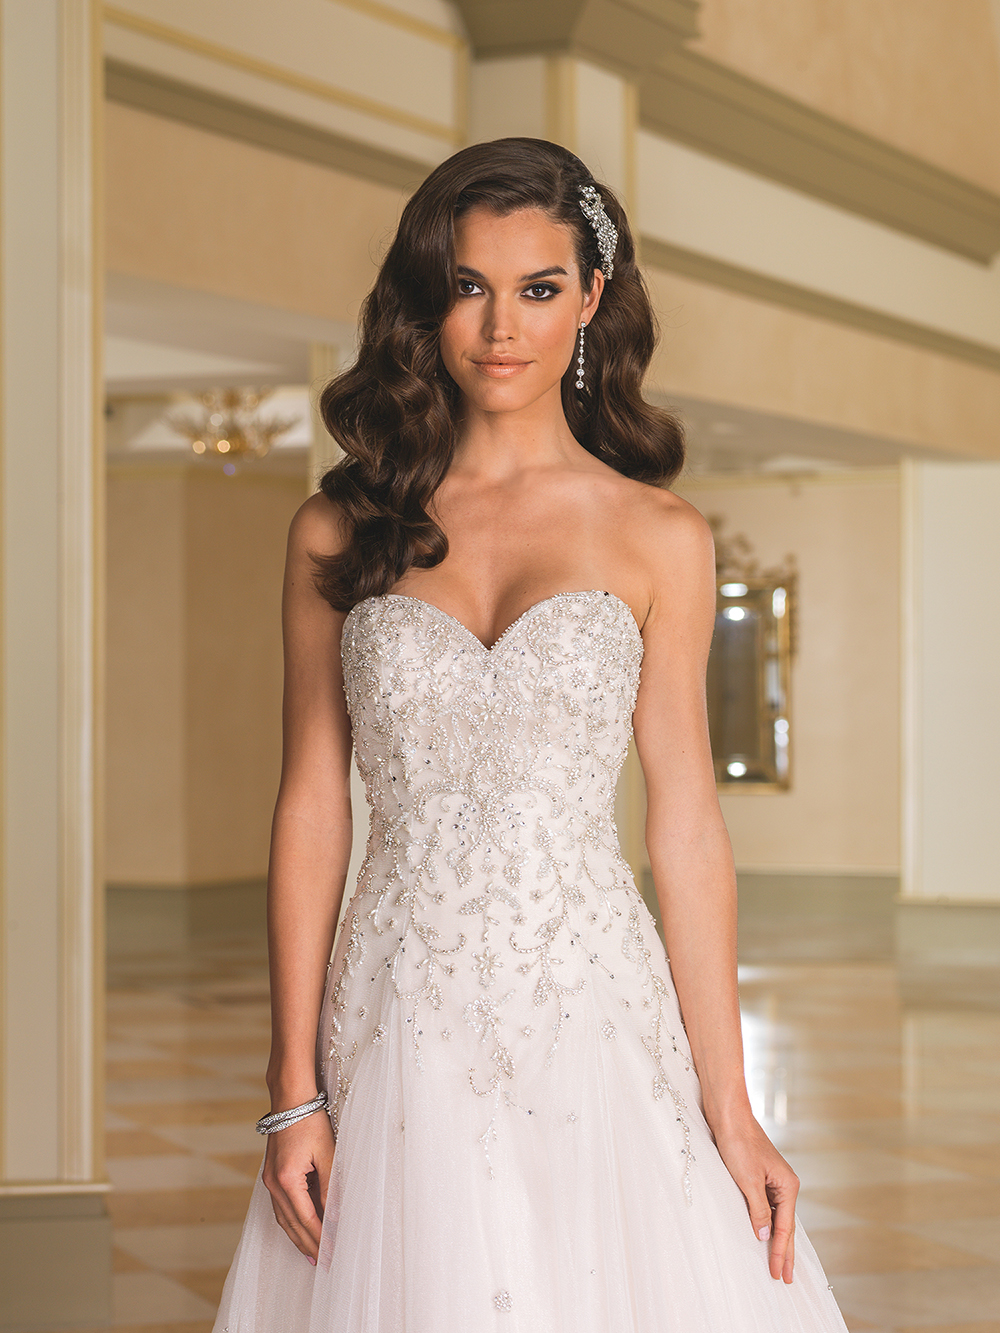 Petite Wedding Dresses Archives - Cheap Wedding Dresses